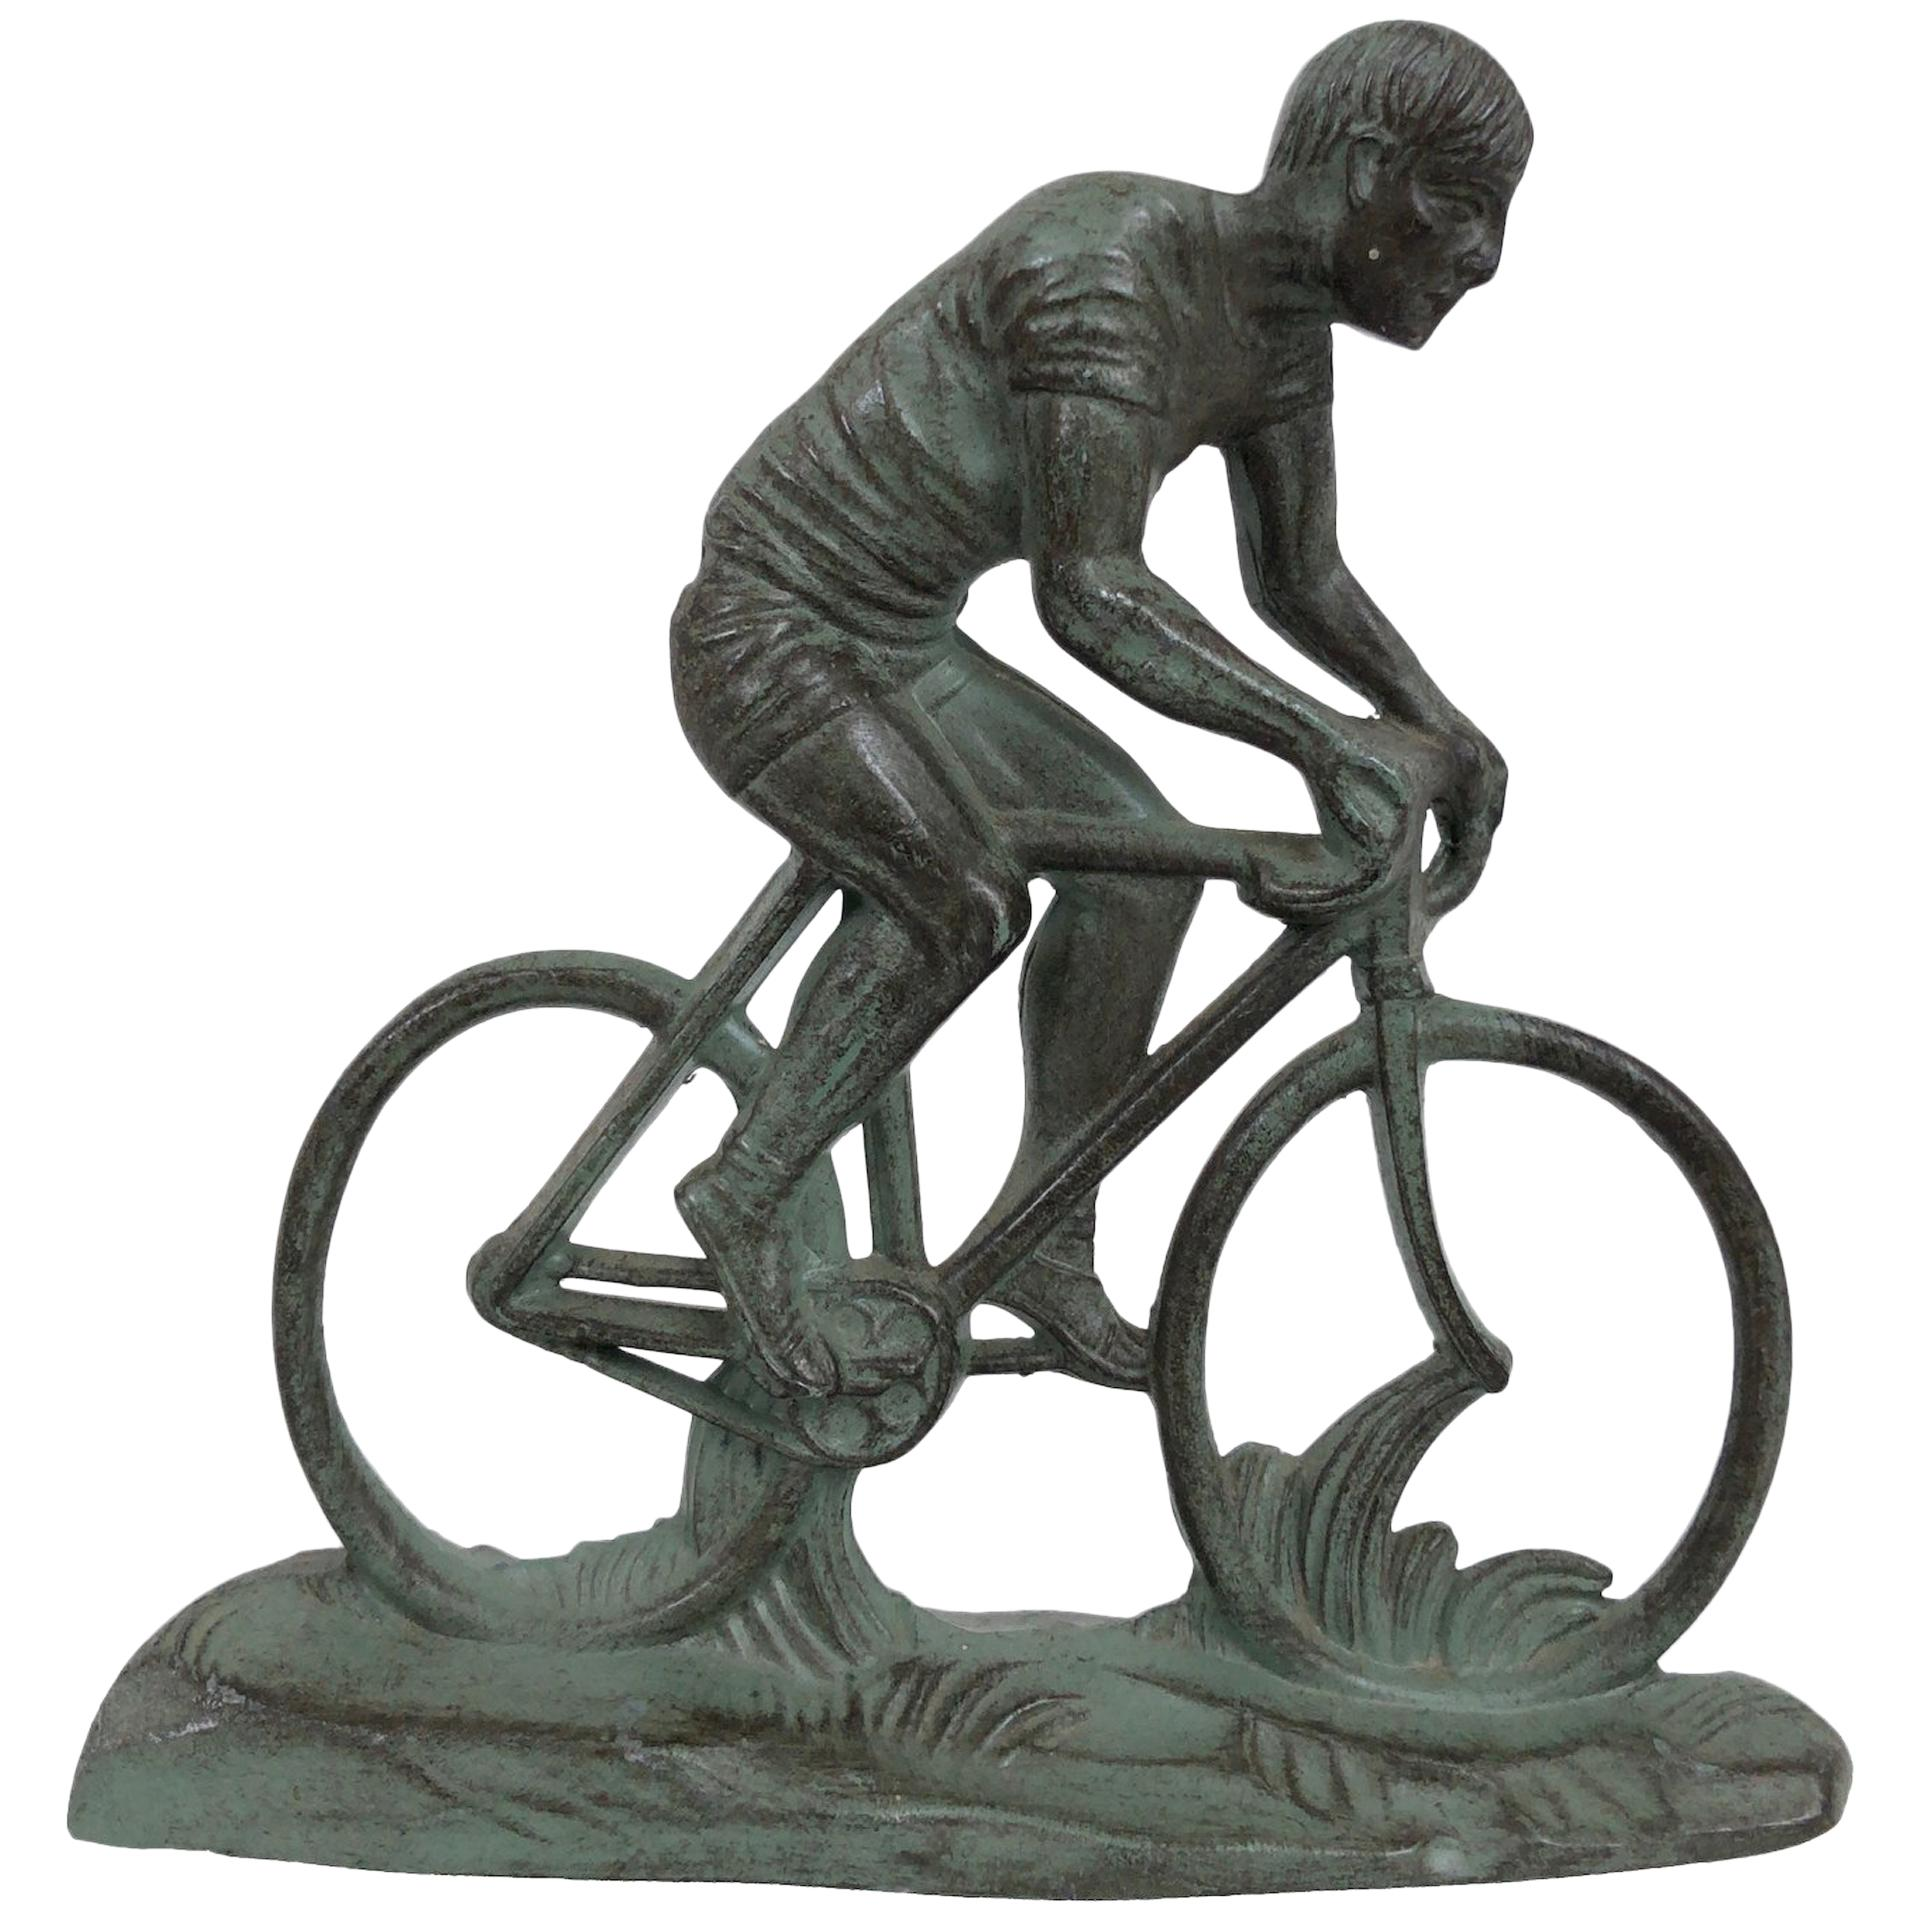 Sportsman on a Racing Bicycle, Sculpture in Spelter, Art Deco, France, 1930s